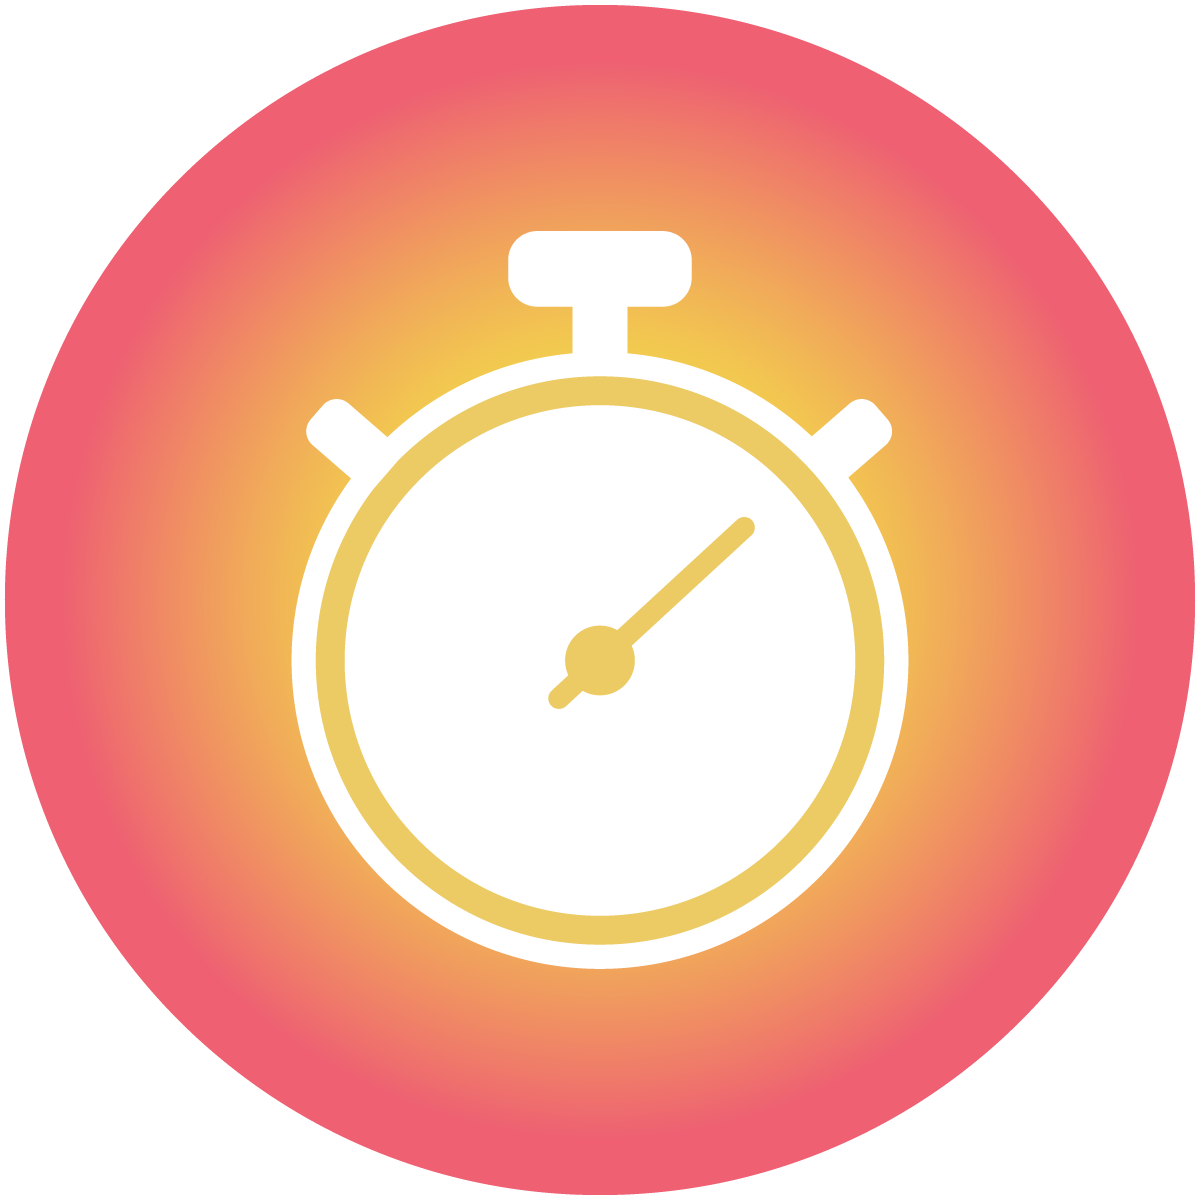 A stopwatch symbol on top of a warm orange circle shows how the COVID-19 vaccine chatbot responds to user questions instantly.